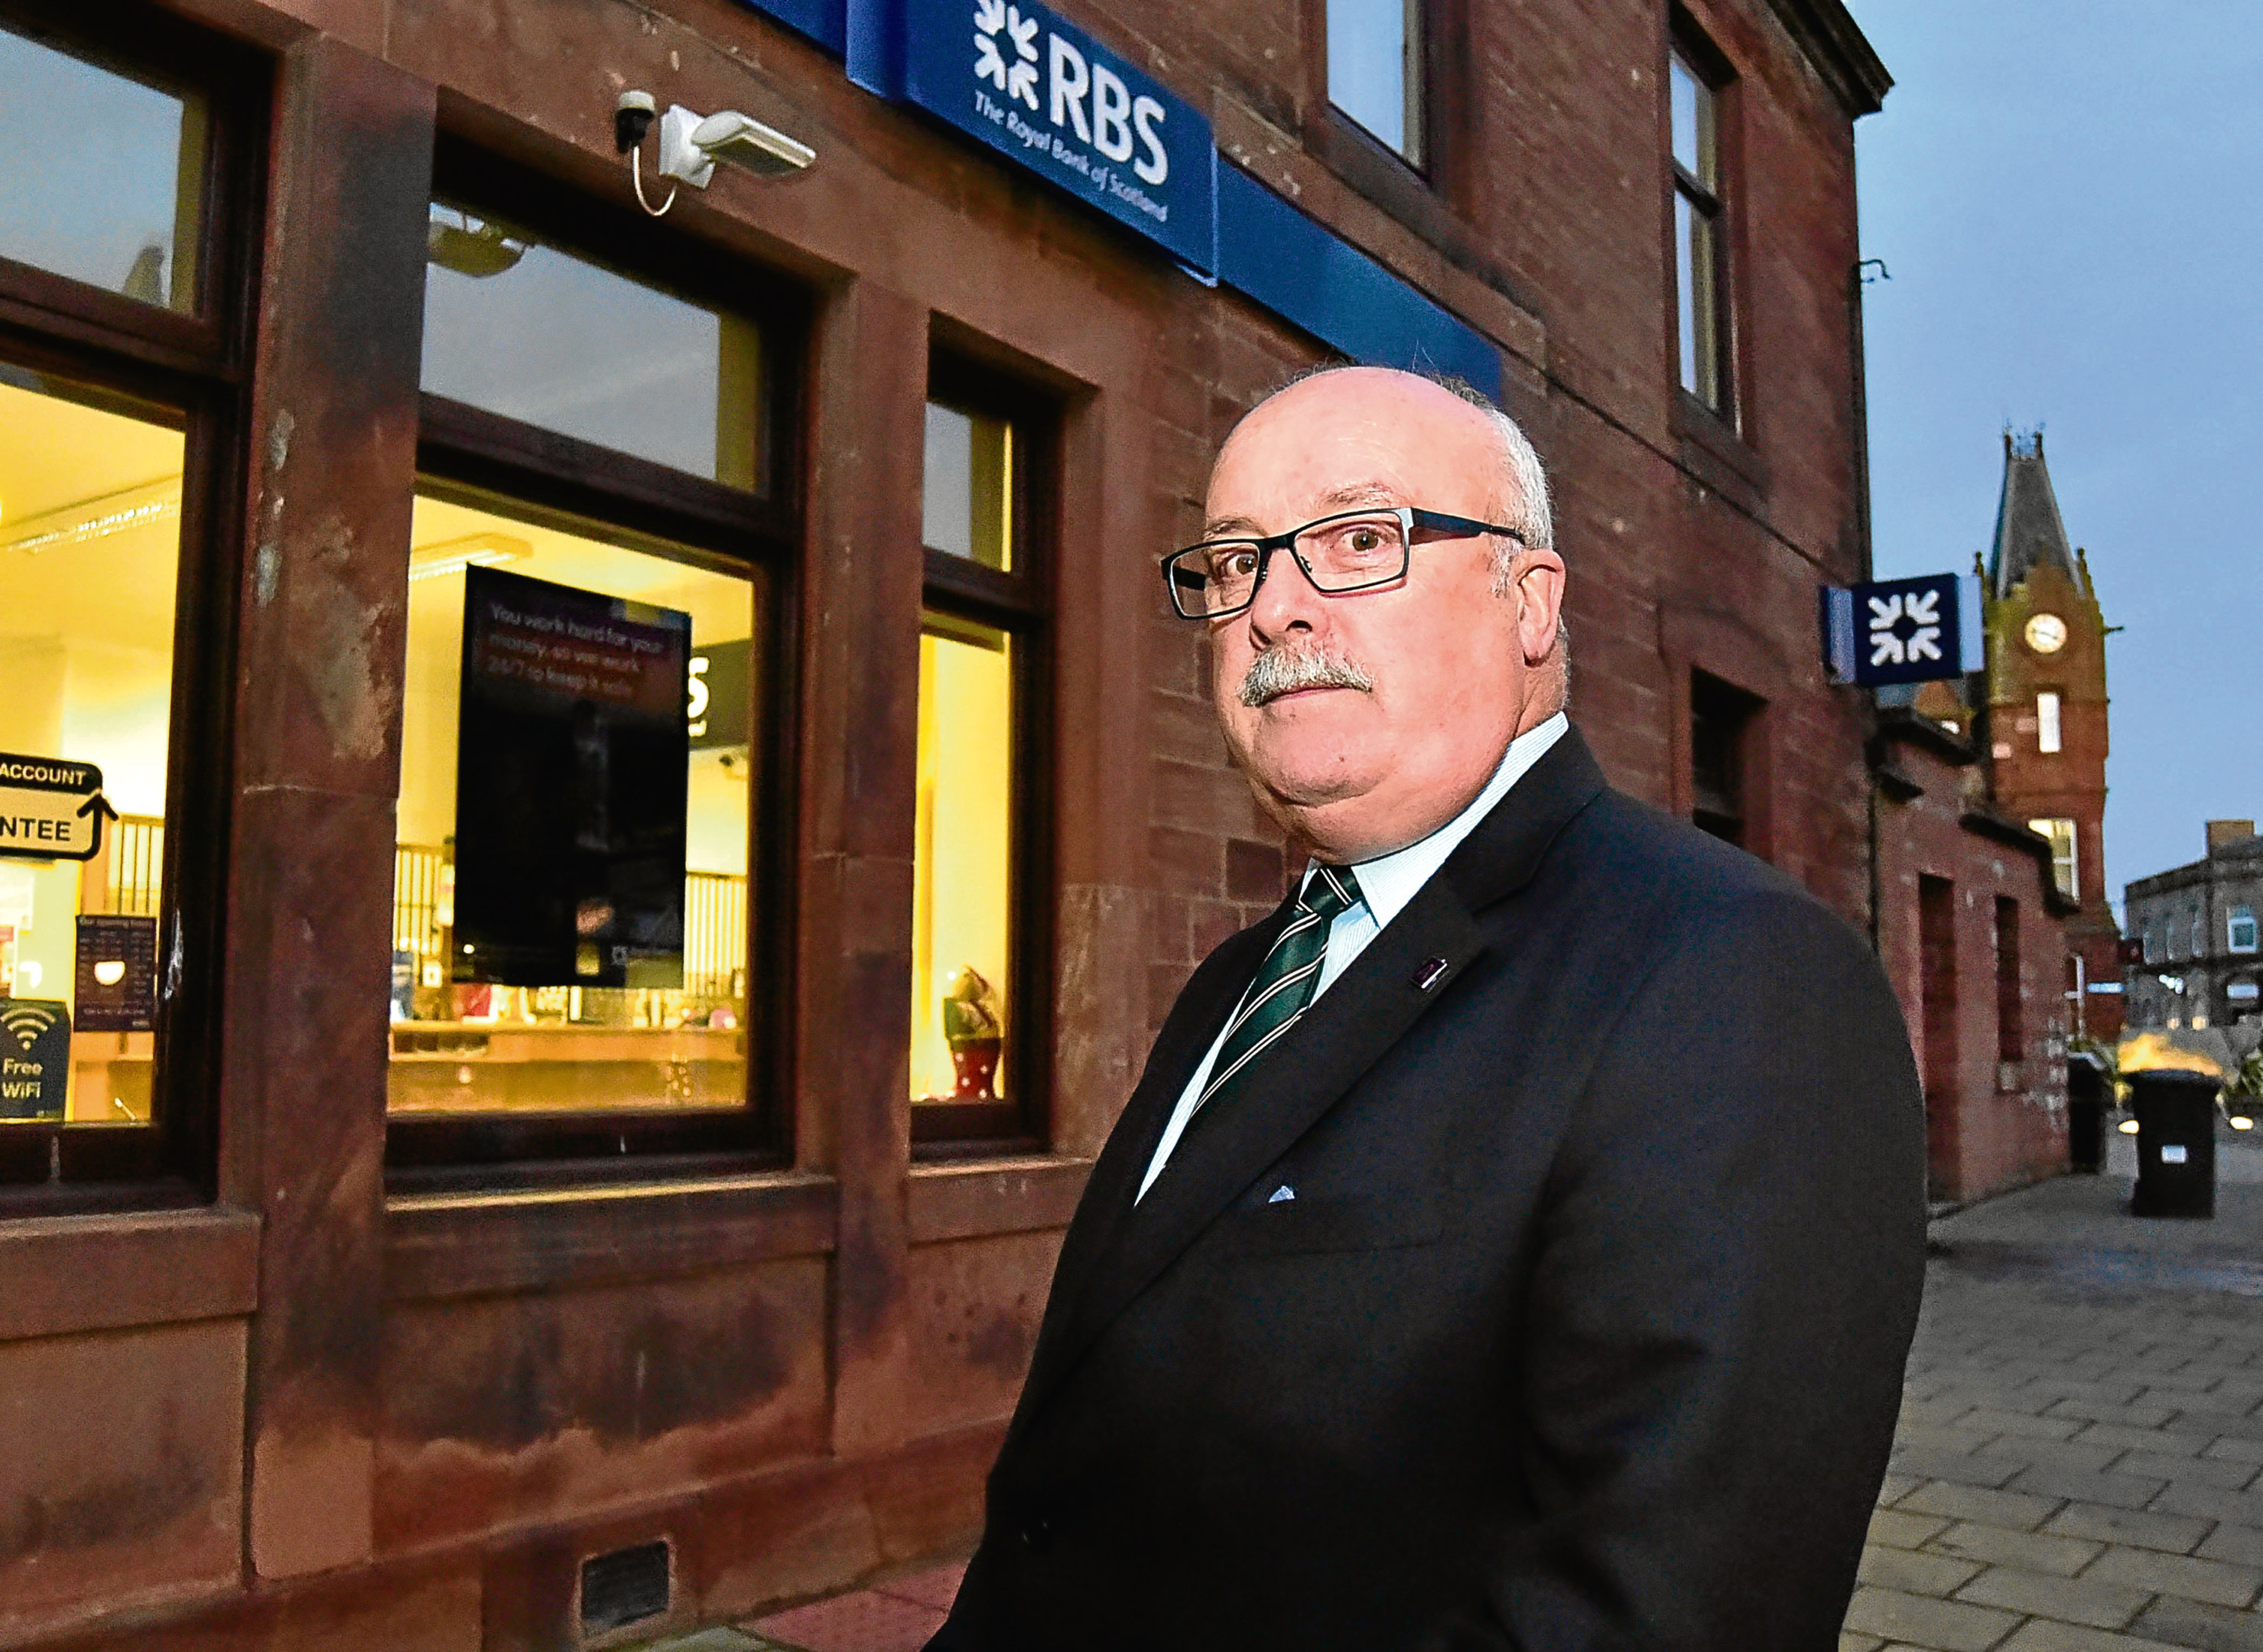 Councillor Alastair Forsyth at the RBS branch in Turriff